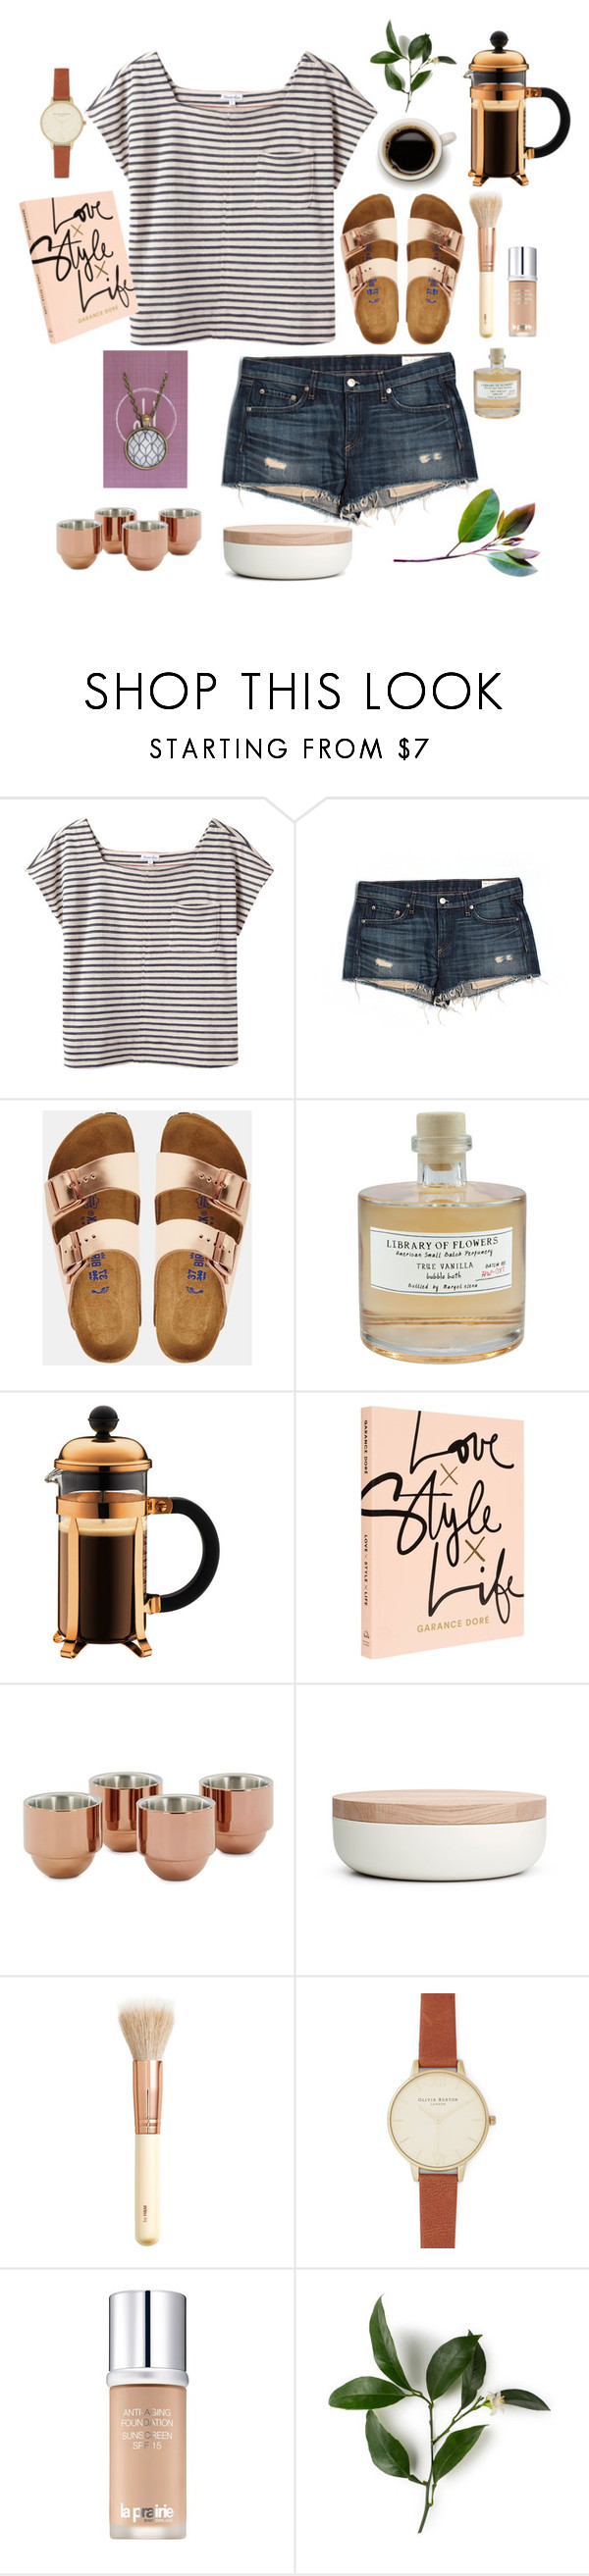 """""""Copper and Stripes"""" by oh-buttons on Polyvore featuring Steven Alan, rag & bone/JEAN, Birkenstock, Library of Flowers, Tom Dixon, When Objects Work, H&M, Olivia Burton and La Prairie"""